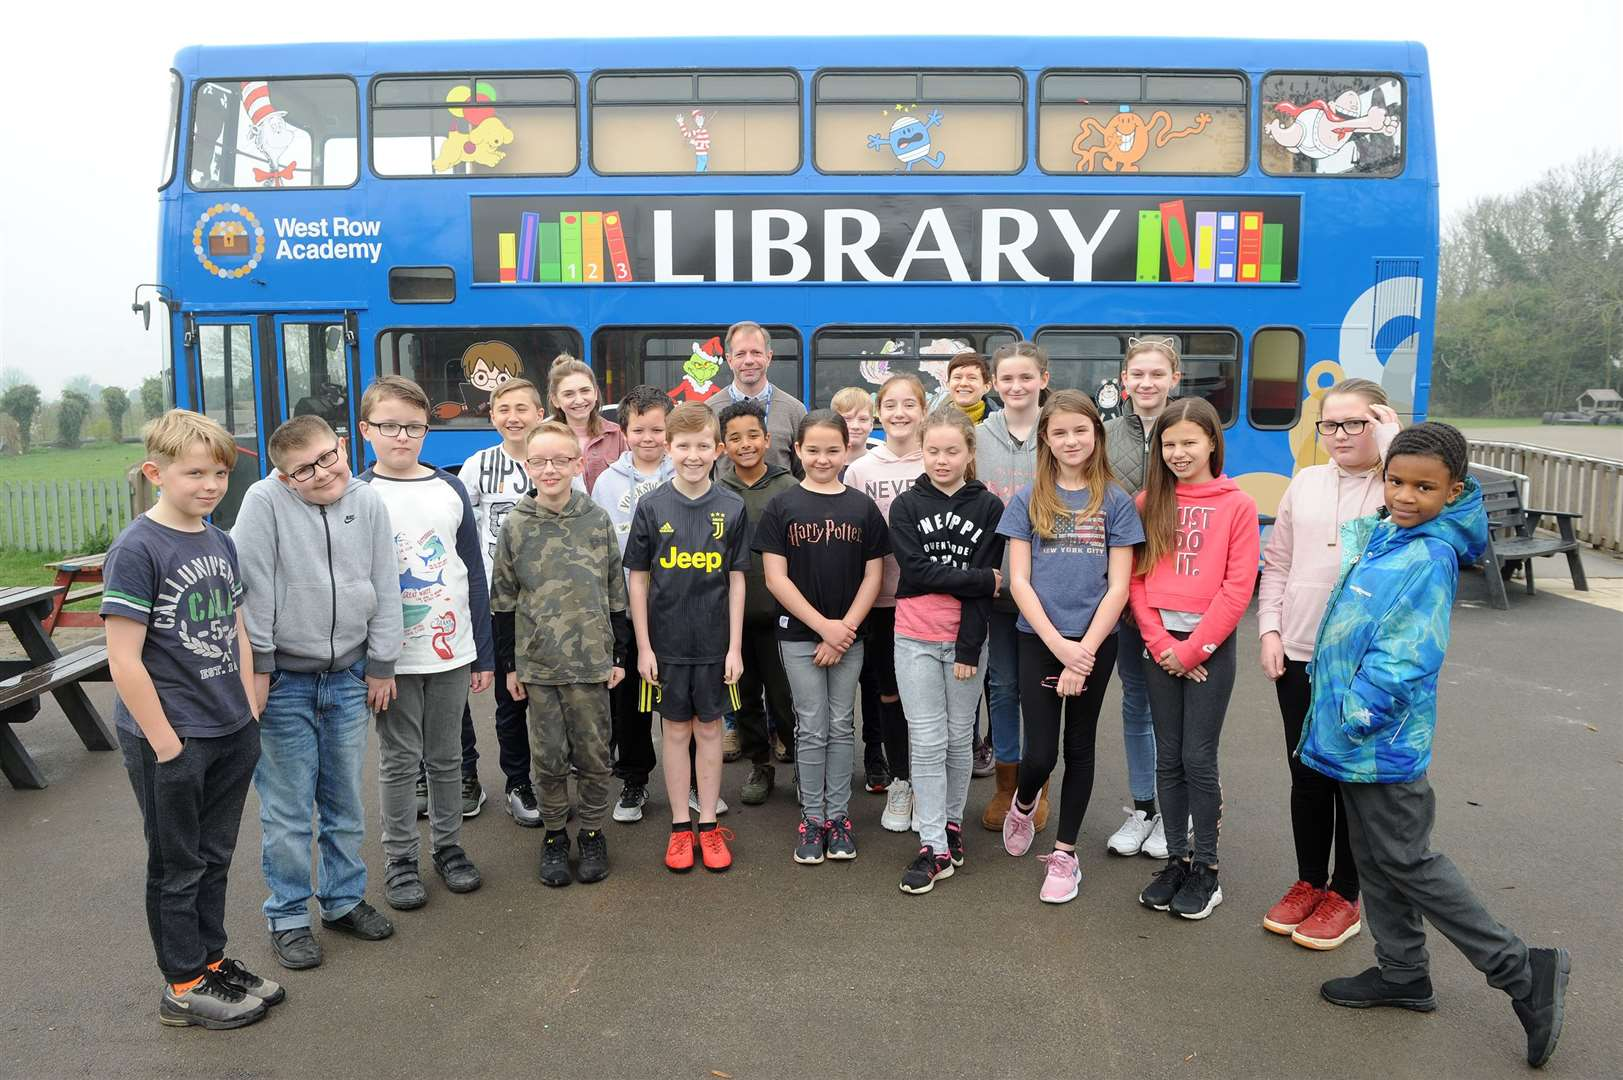 Pupils and staff at West Row Academy with the newly decorated library bus. Picture: Mecha Morton.